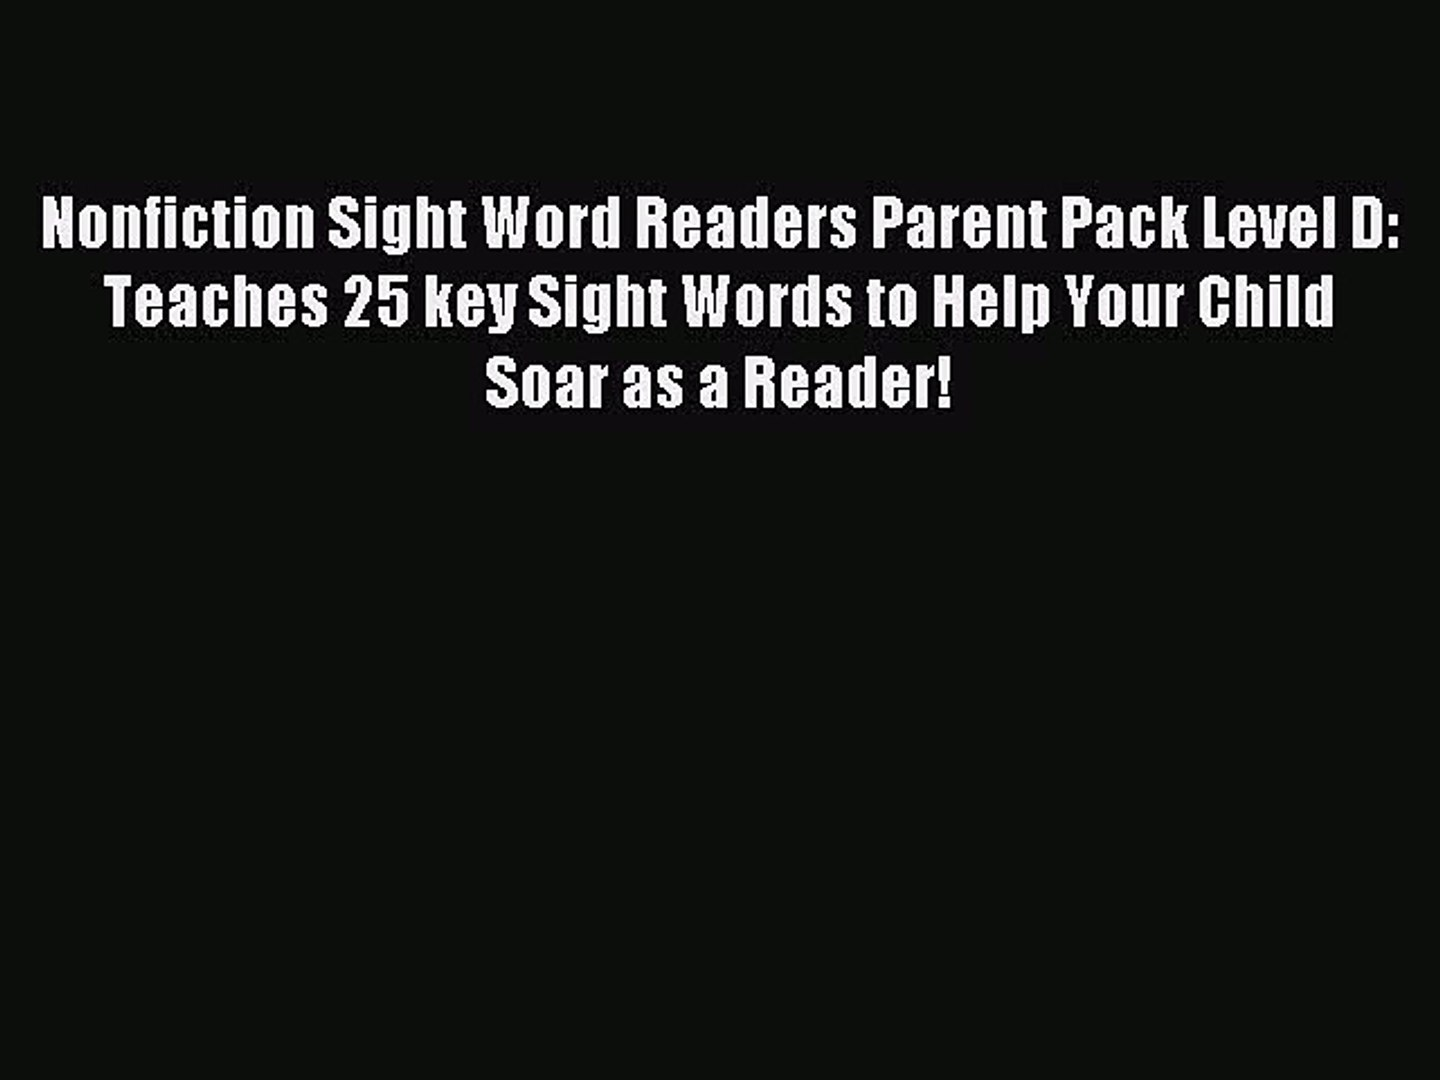 Nonfiction Sight Word Readers Parent Pack Level C Teaches 25 key Sight Words to Help Your Child Soar as a Reader!